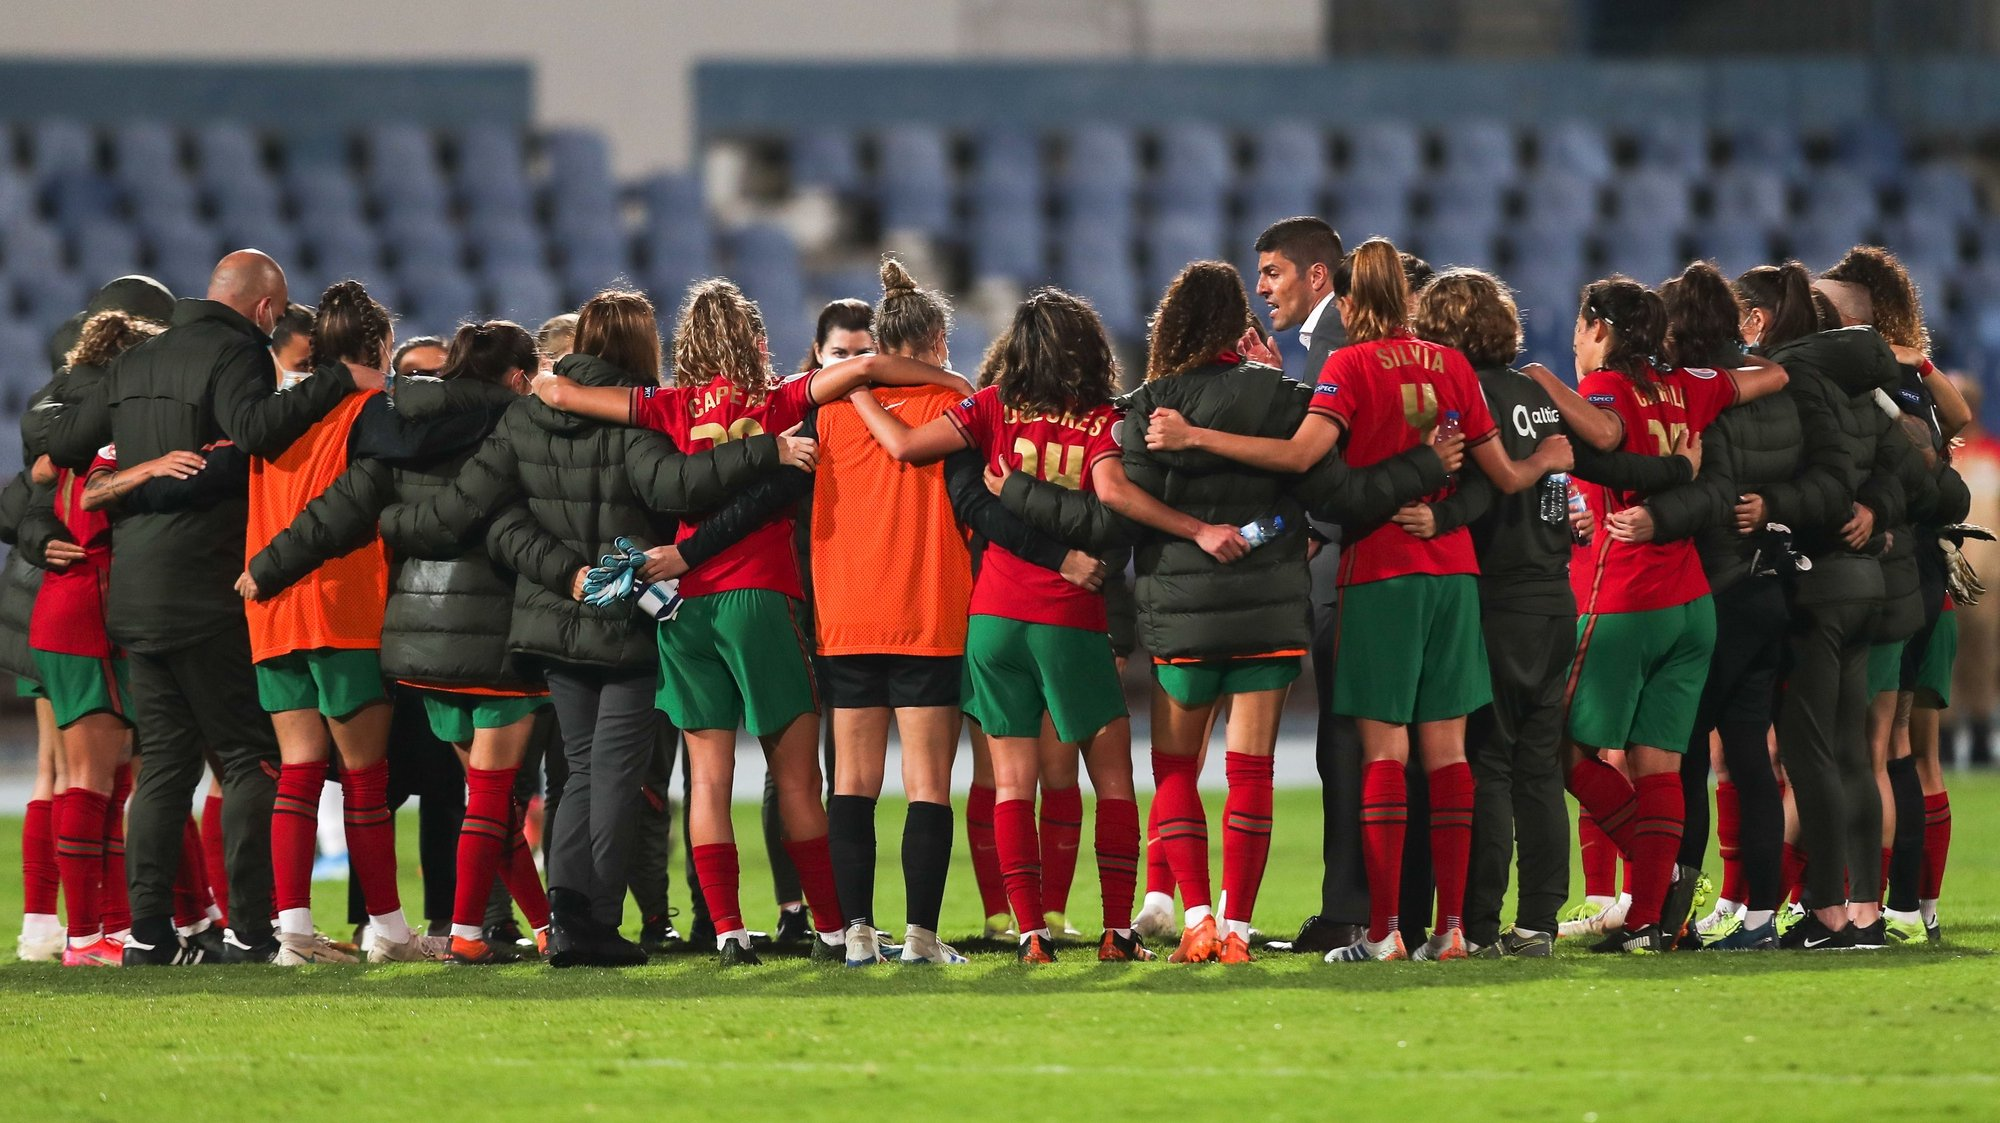 Portugal's head coach Francisco Neto talks the her players in the end of UEFA Women's EURO play-off match against Portugal at Restelo Stadium in Lisbon, 9 of April 2021. MIGUEL A. LOPES/LUSA